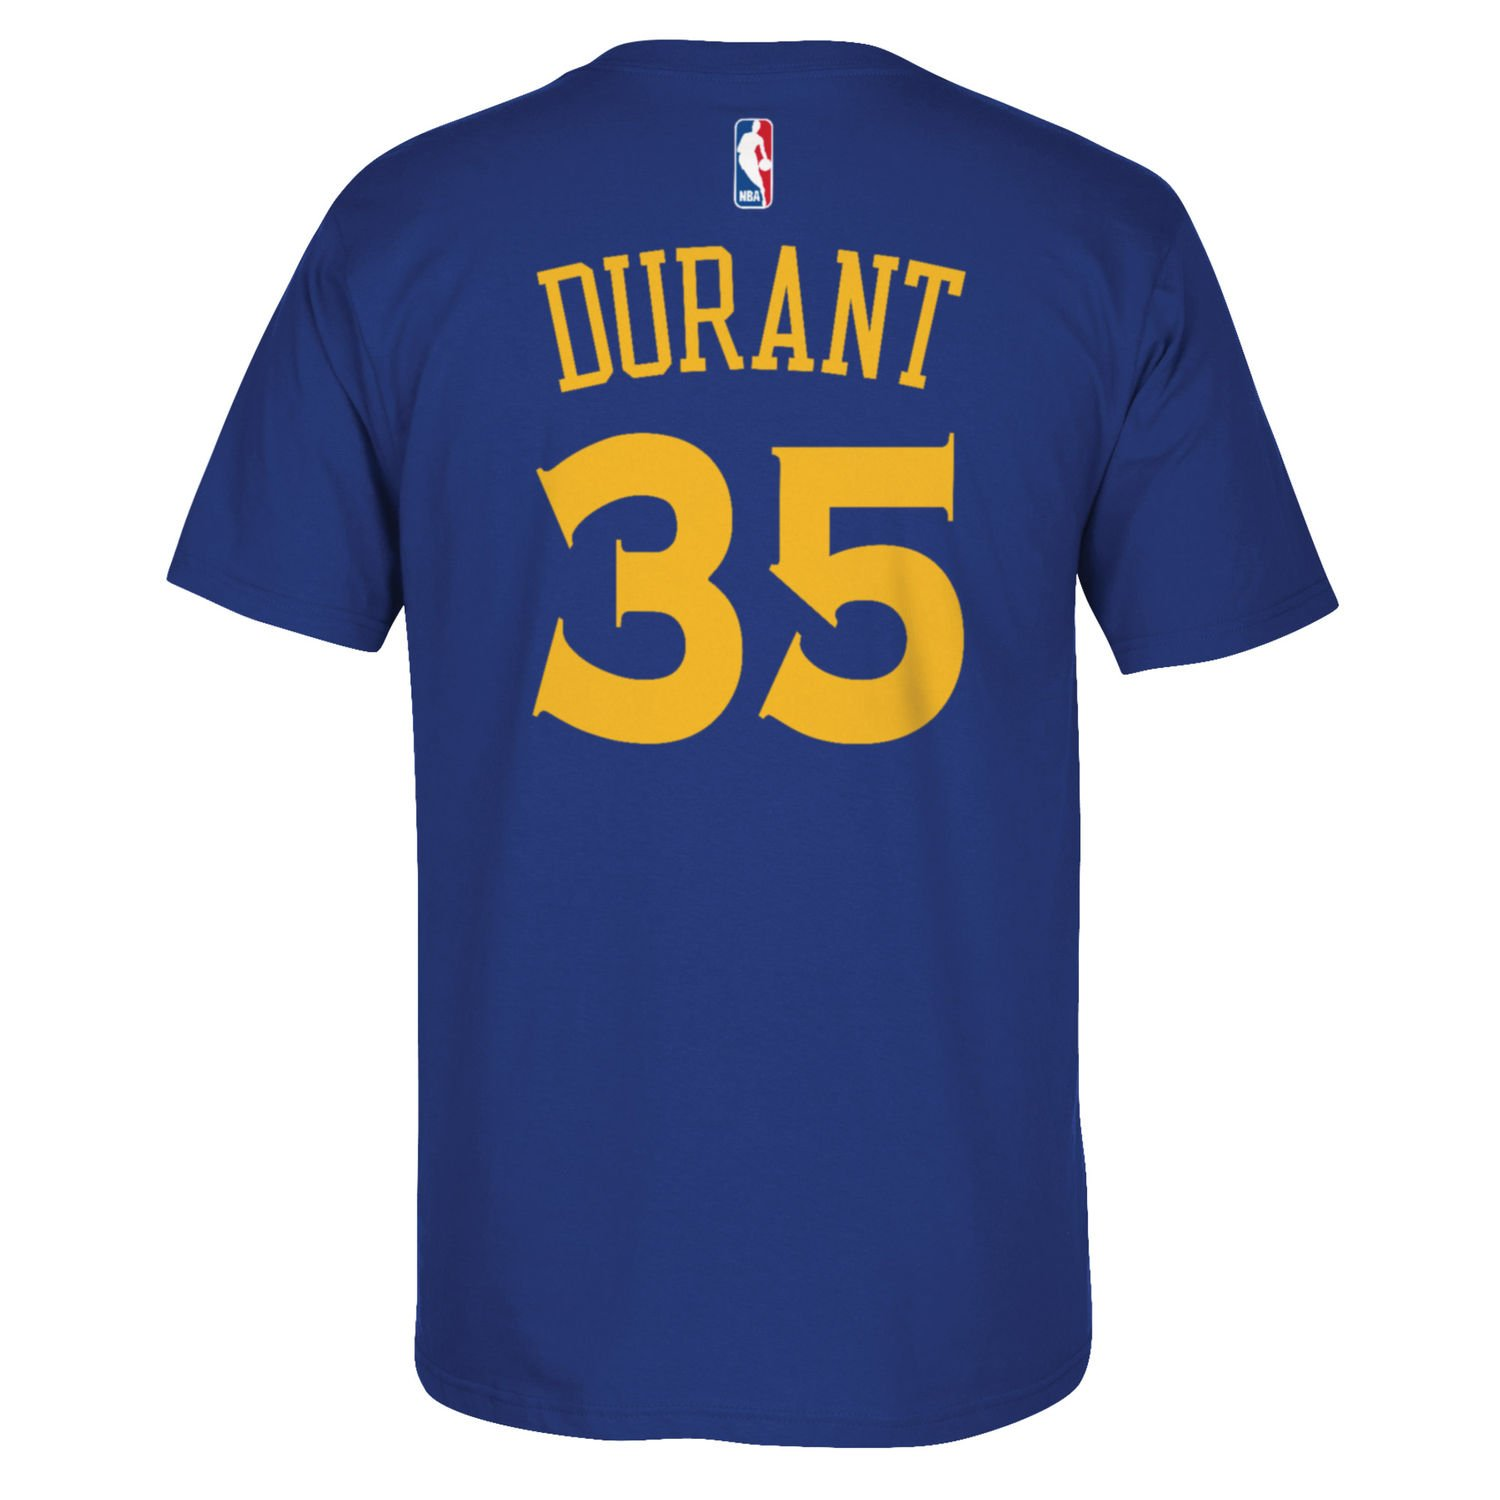 e43f1abbabc Amazon.com   Outerstuff NBA Youth 8-20 Performance Game Time Team Color  Player Name and Number Jersey T-Shirt - Kevin Durant   Sports   Outdoors